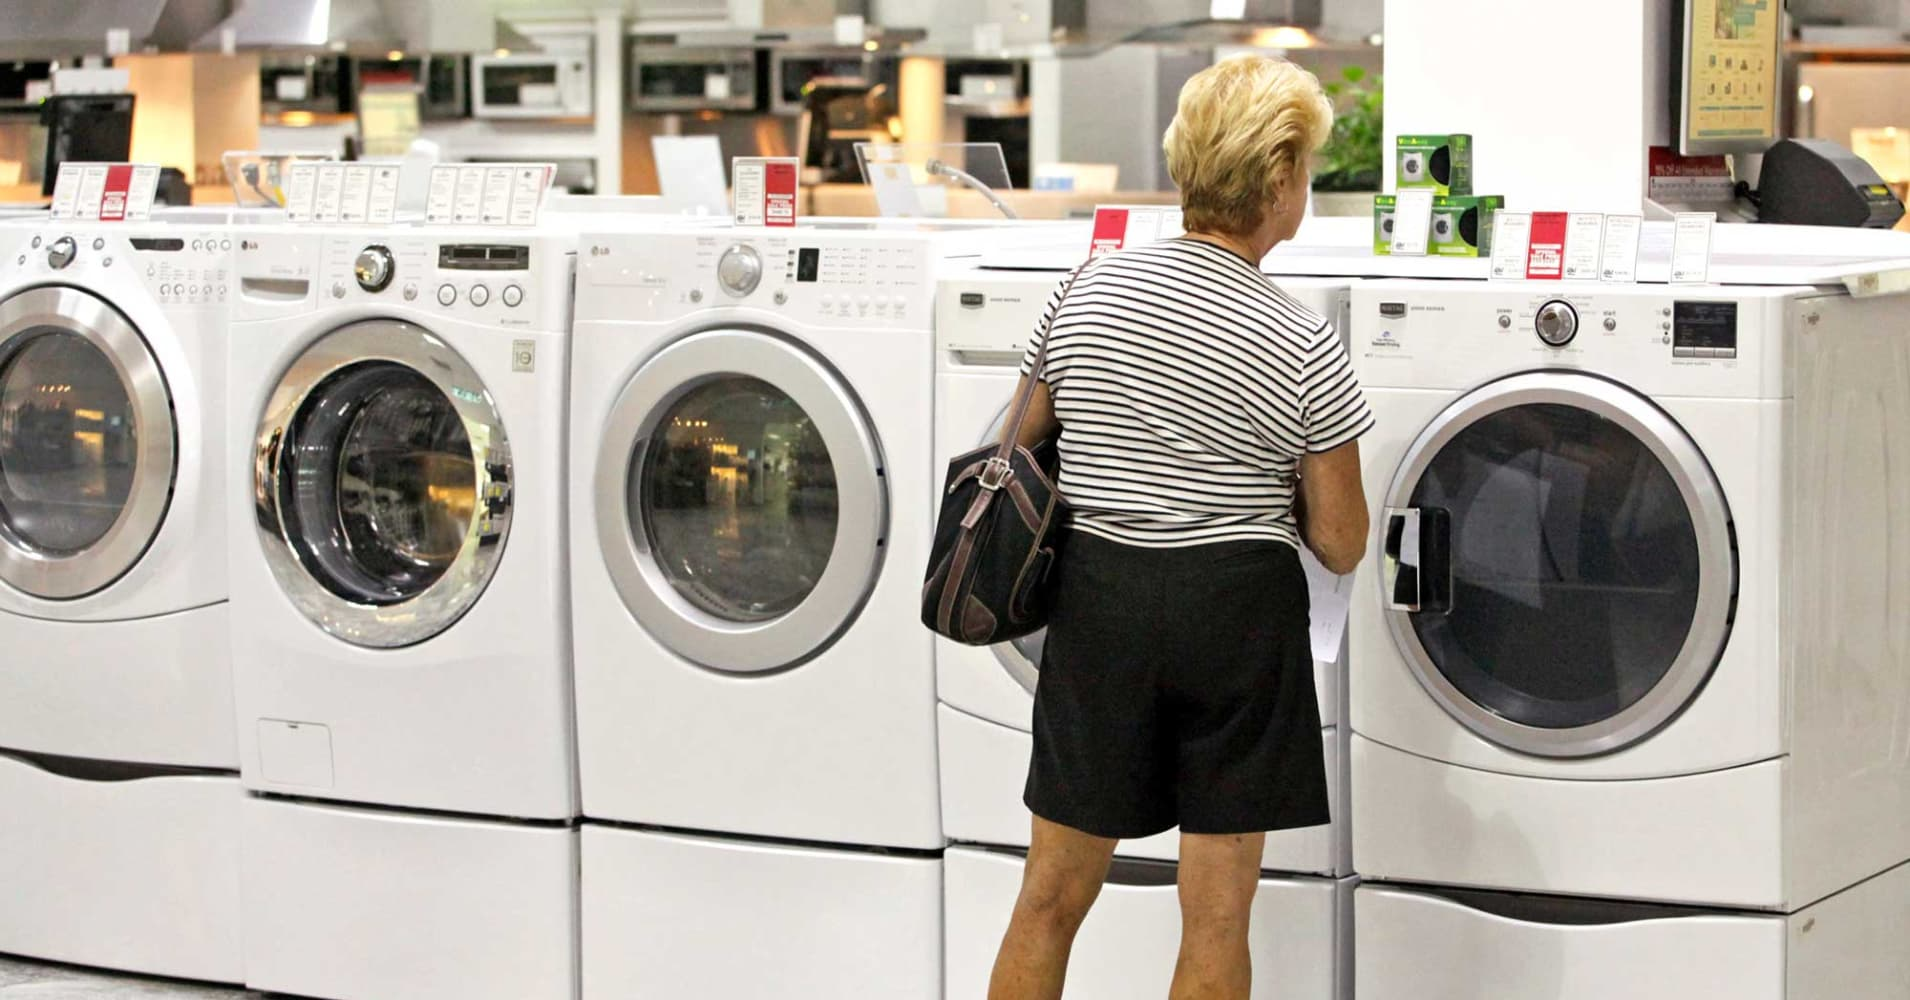 US durable goods orders fell for first time in 5 months